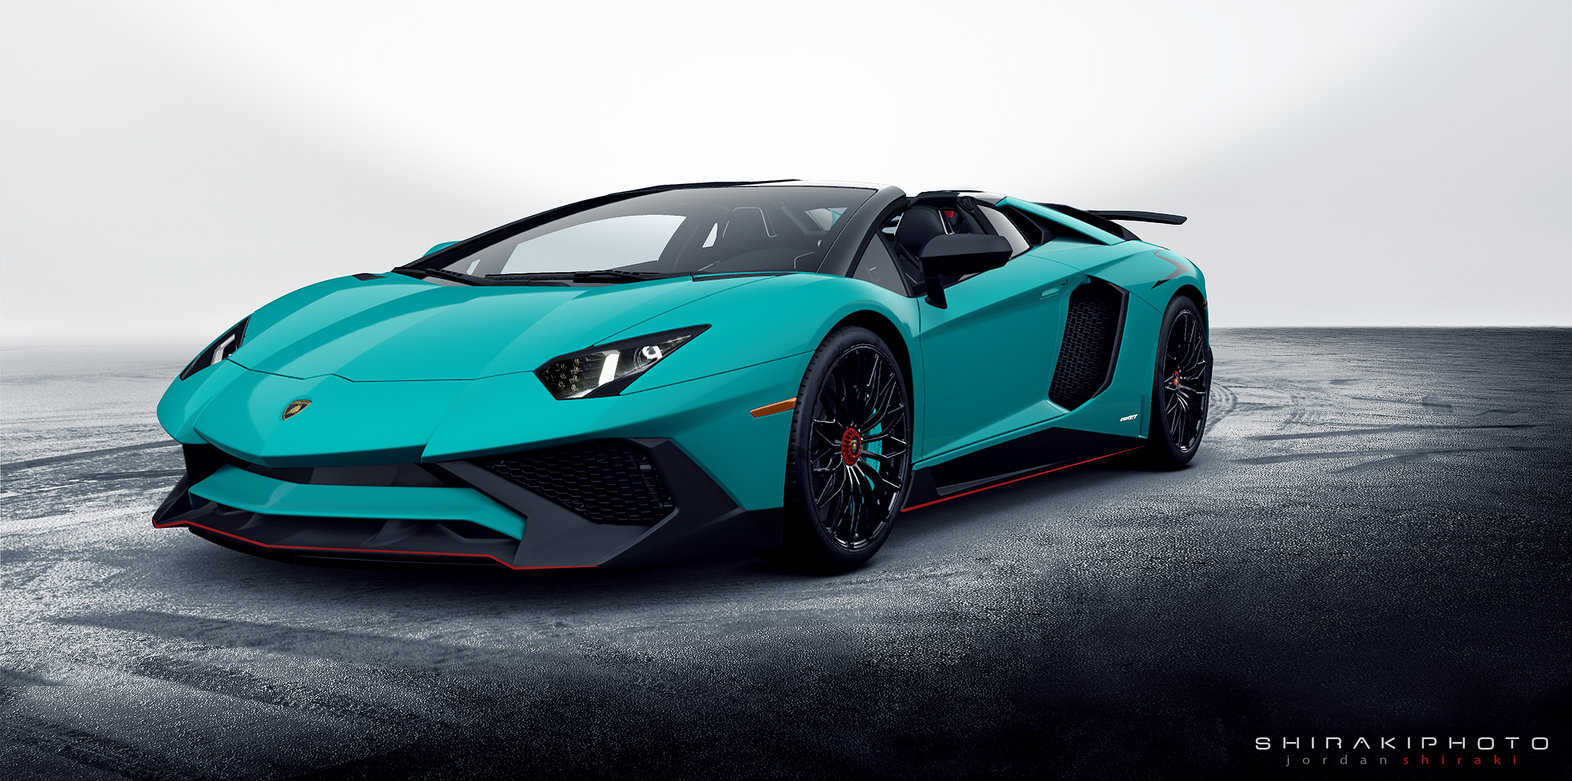 new lamborghini aventador lp750 4 superveloce roadster first photos carscoops. Black Bedroom Furniture Sets. Home Design Ideas